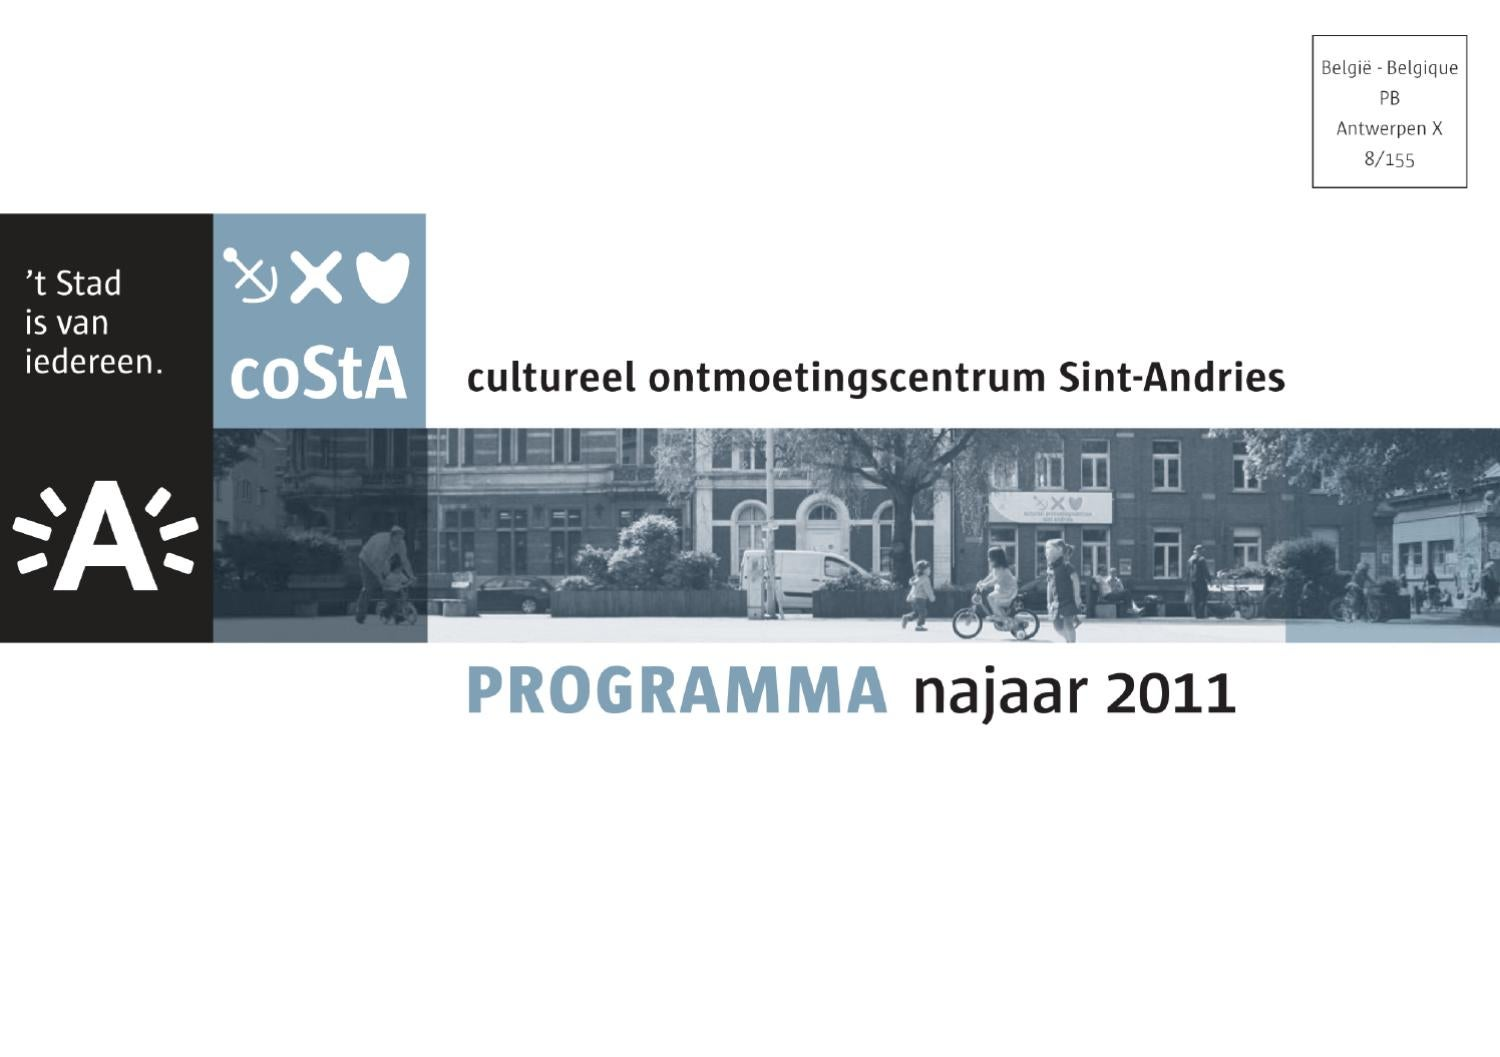 Najaarsbrochure coStA 2011 by An Maes - issuu